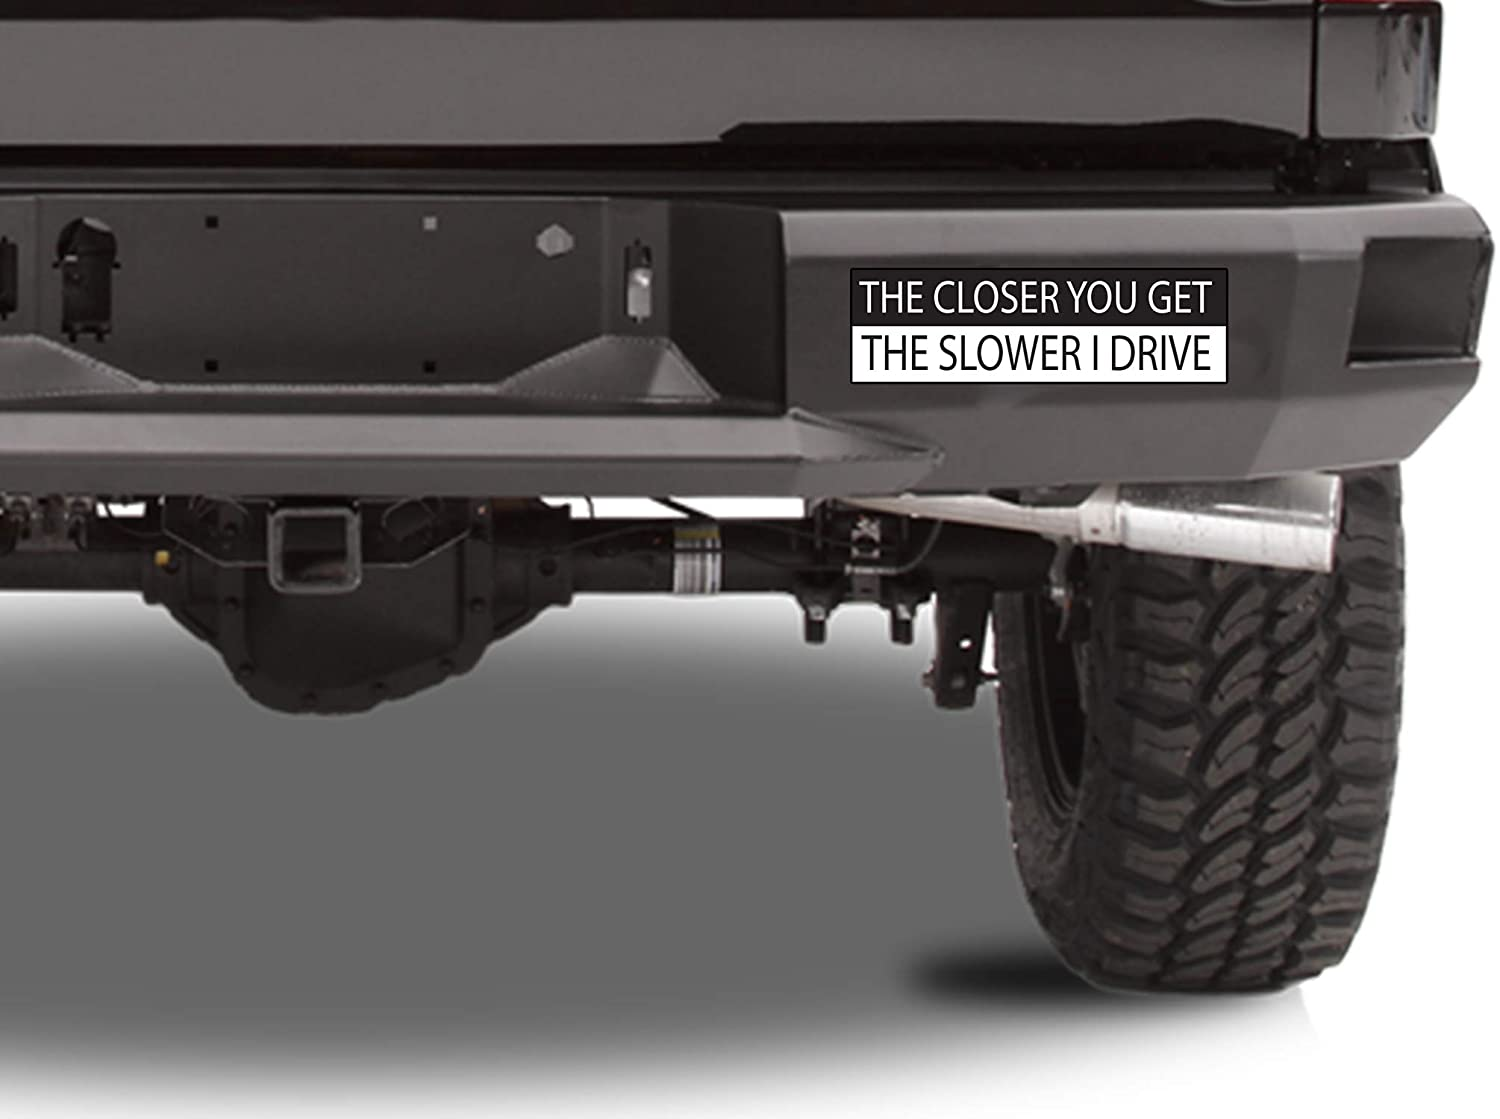 Rogue River Tactical 10in x 3in Large Funny Auto Decal Bumper Sticker The Closer You Get The Slower I Drive Car Truck Boat RV (Slower)